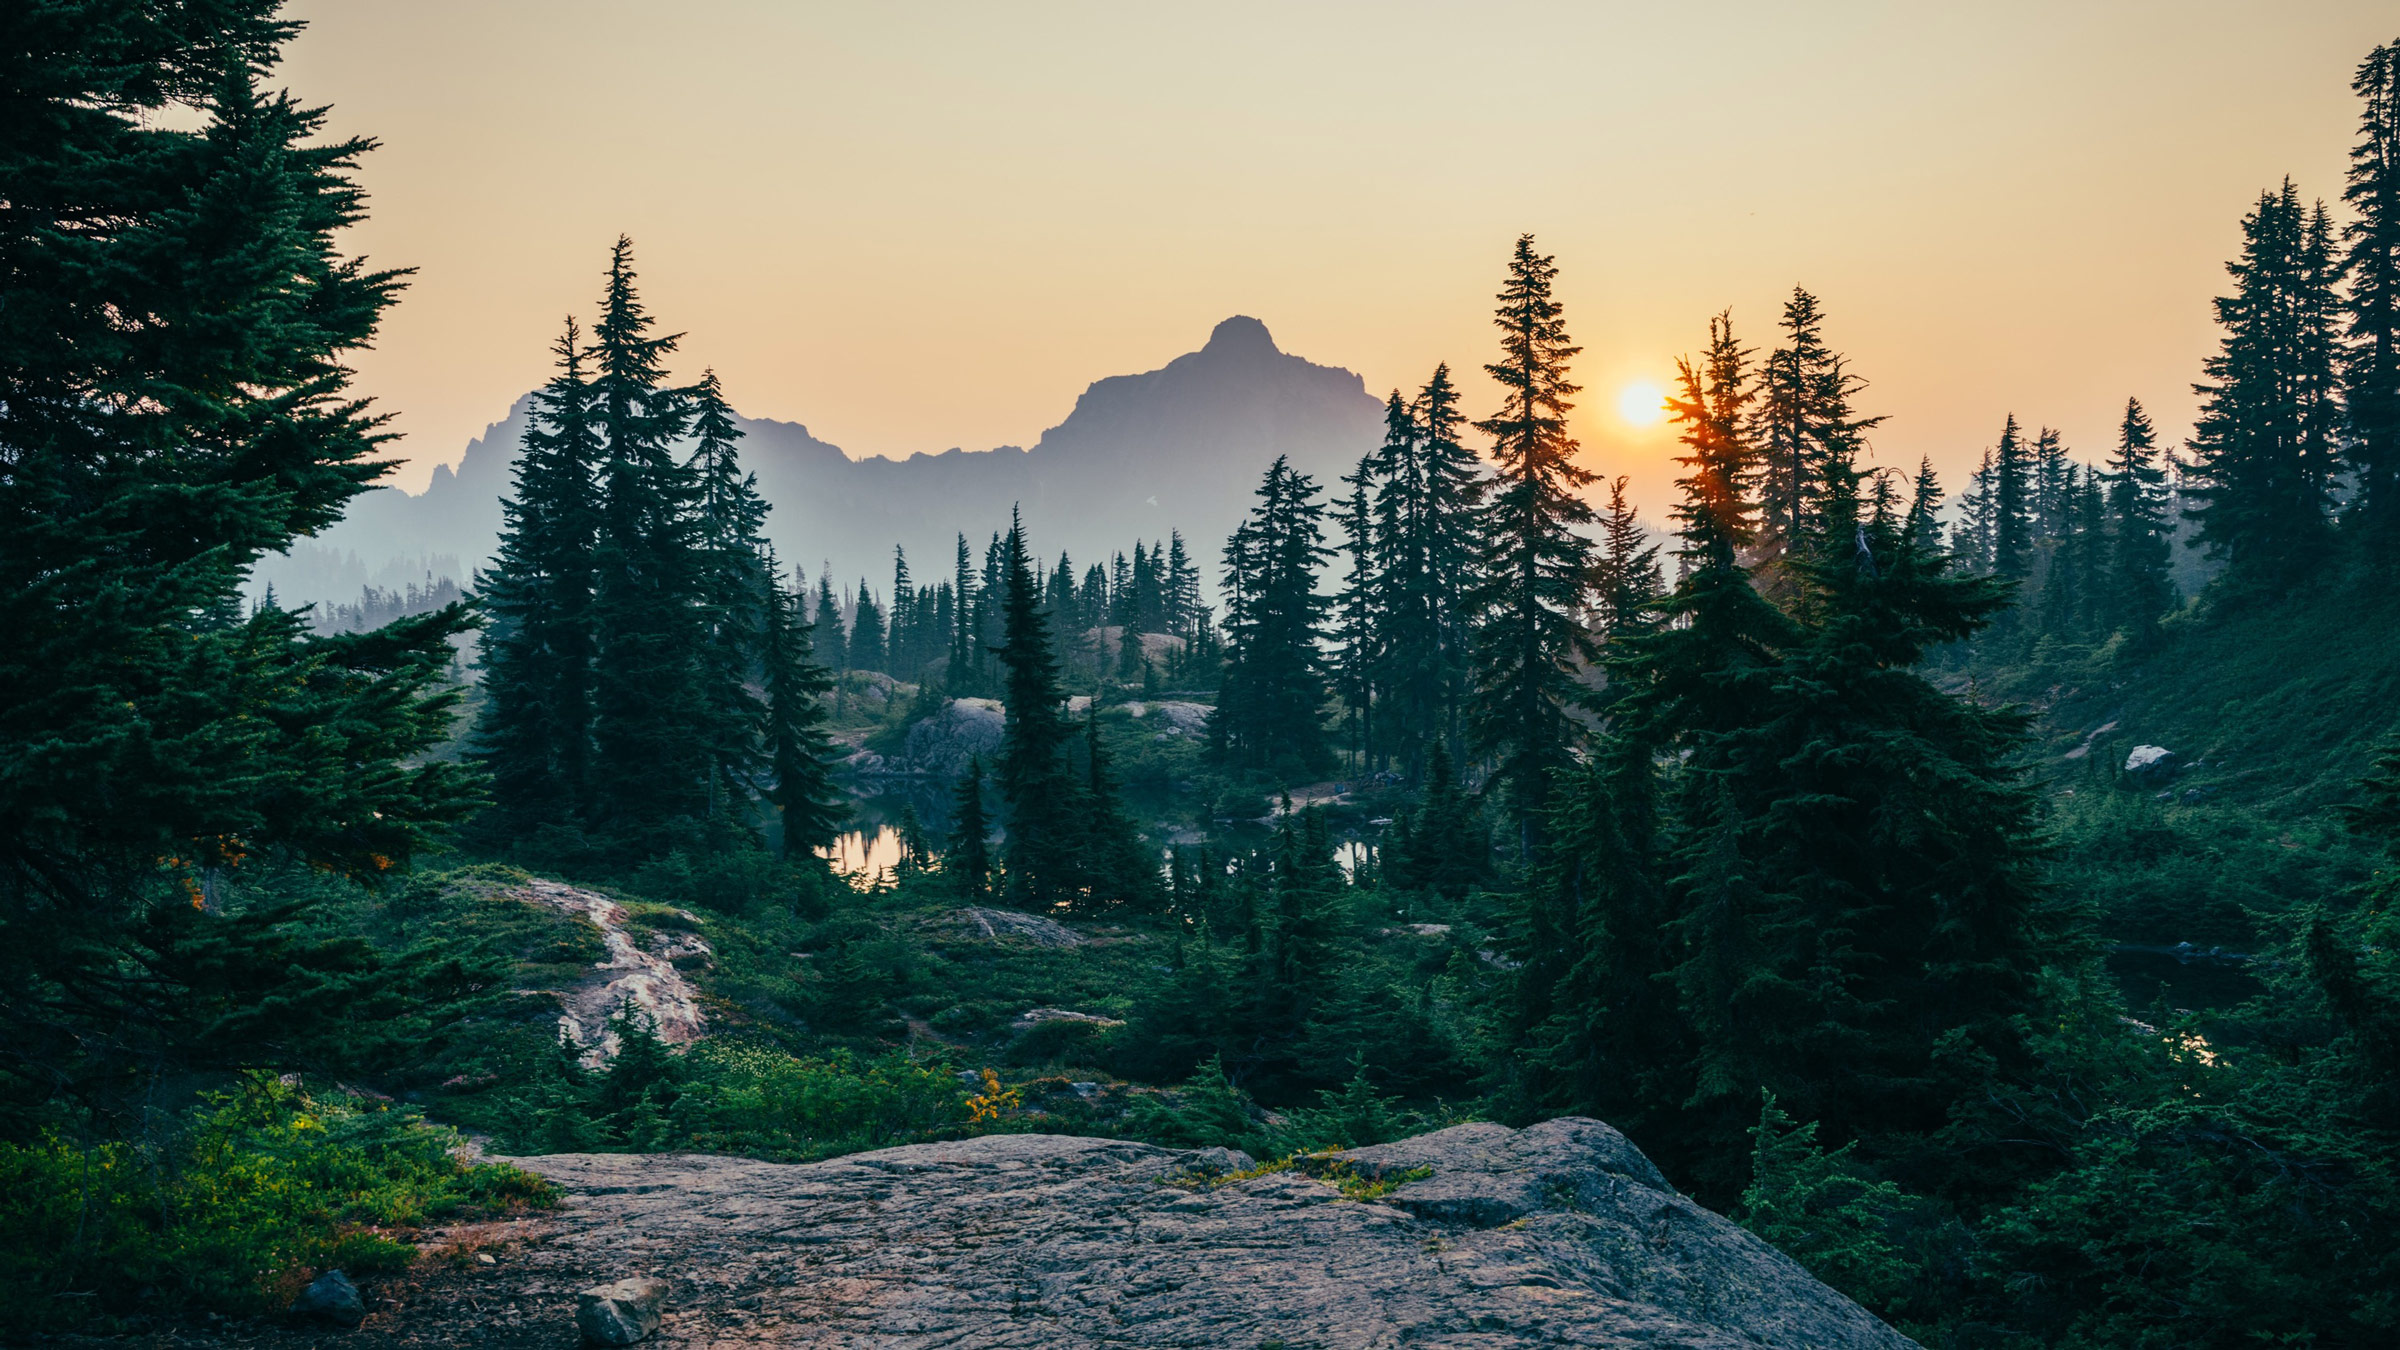 Photo of a sunrise through the mountains and trees